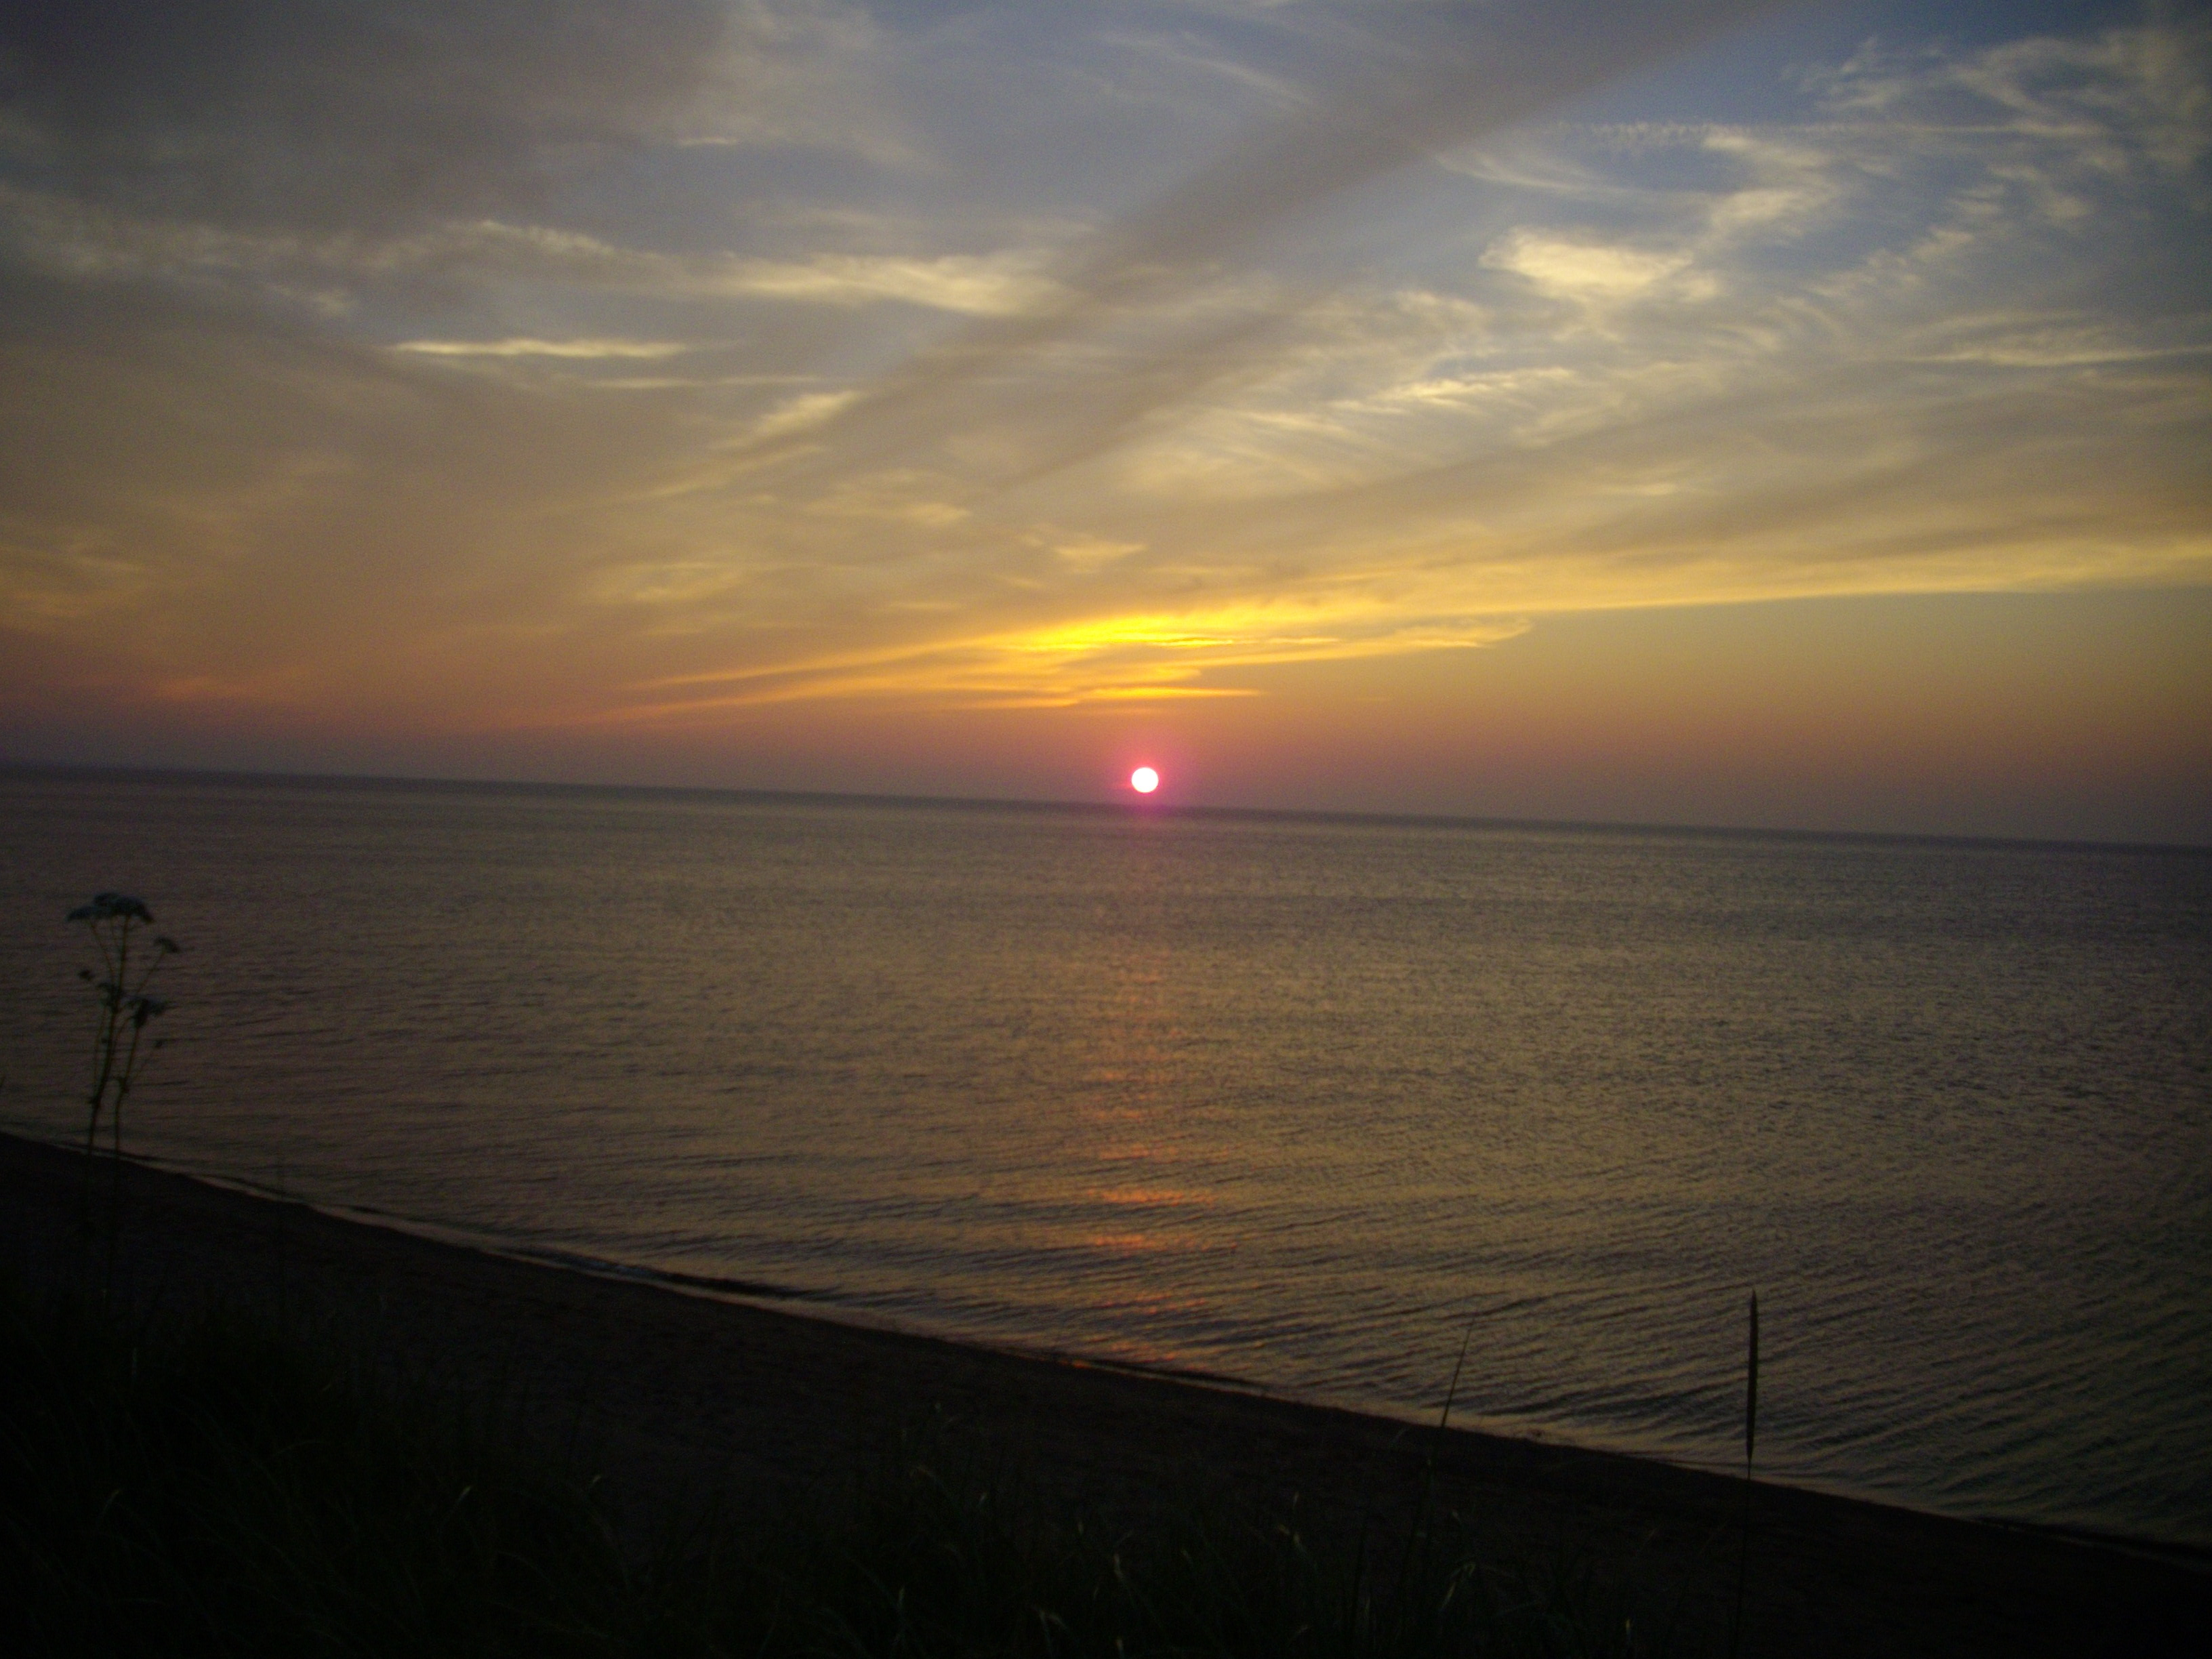 Sunset over the Northumberland Strait